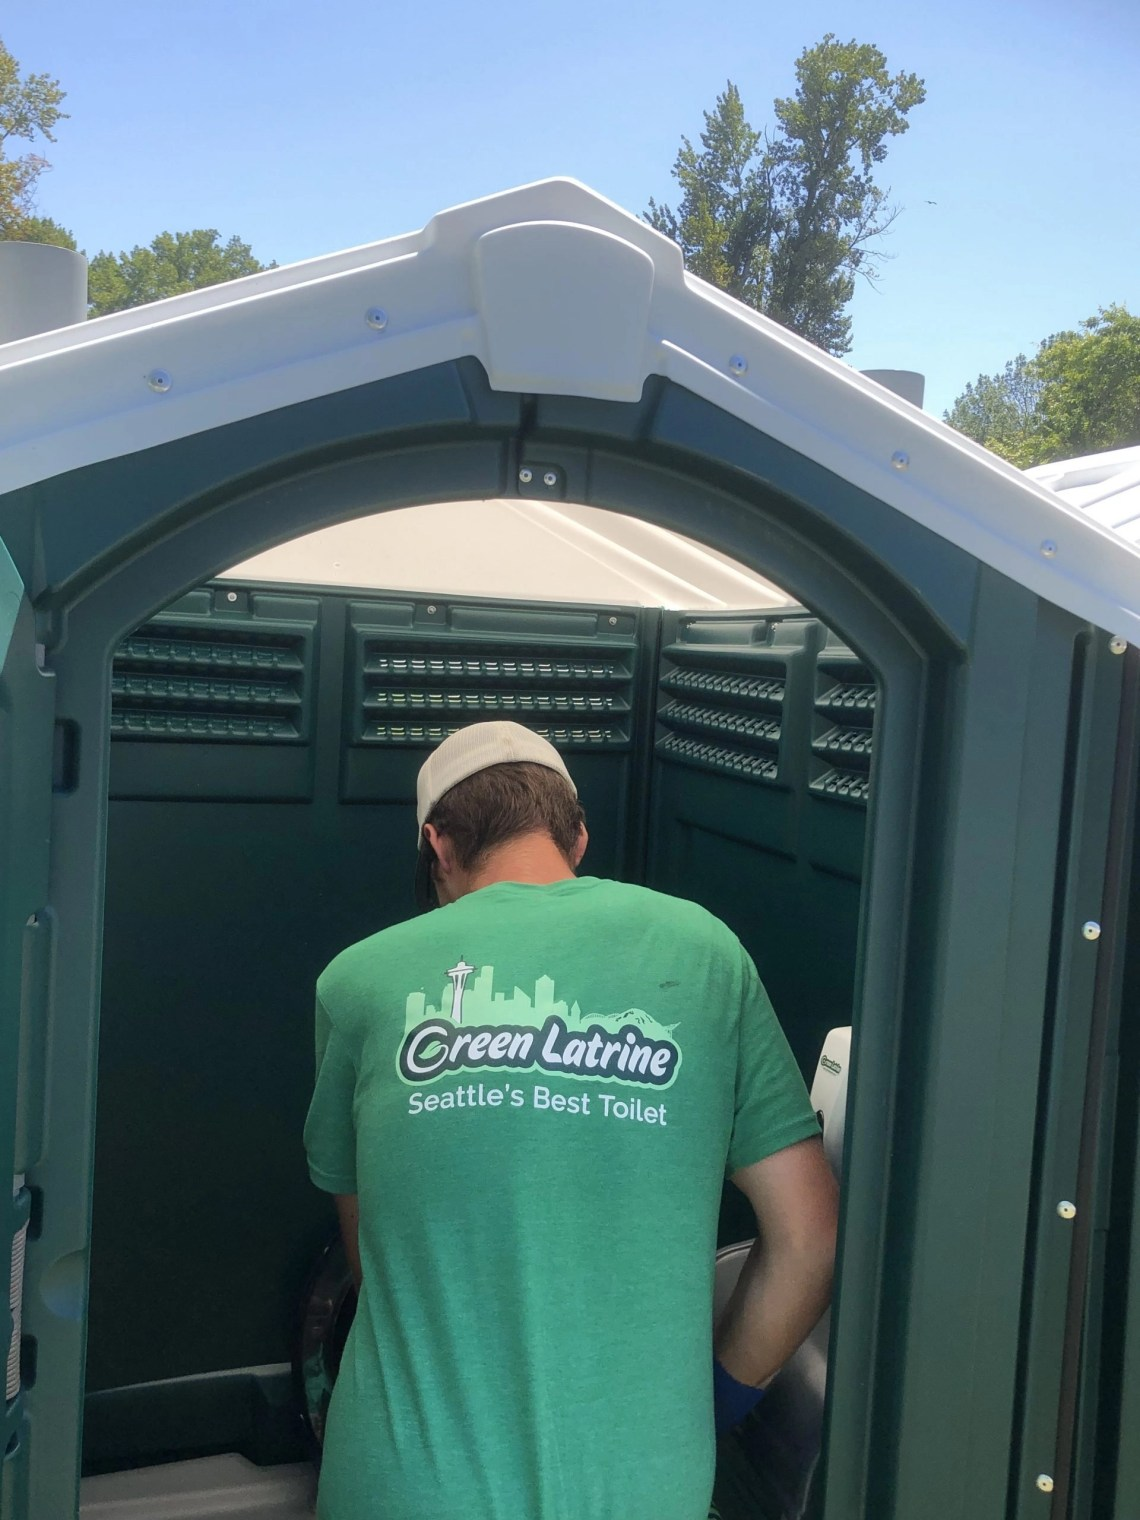 restrooms are needed wherever people are. Provide the best bathroom experiece in Seattle